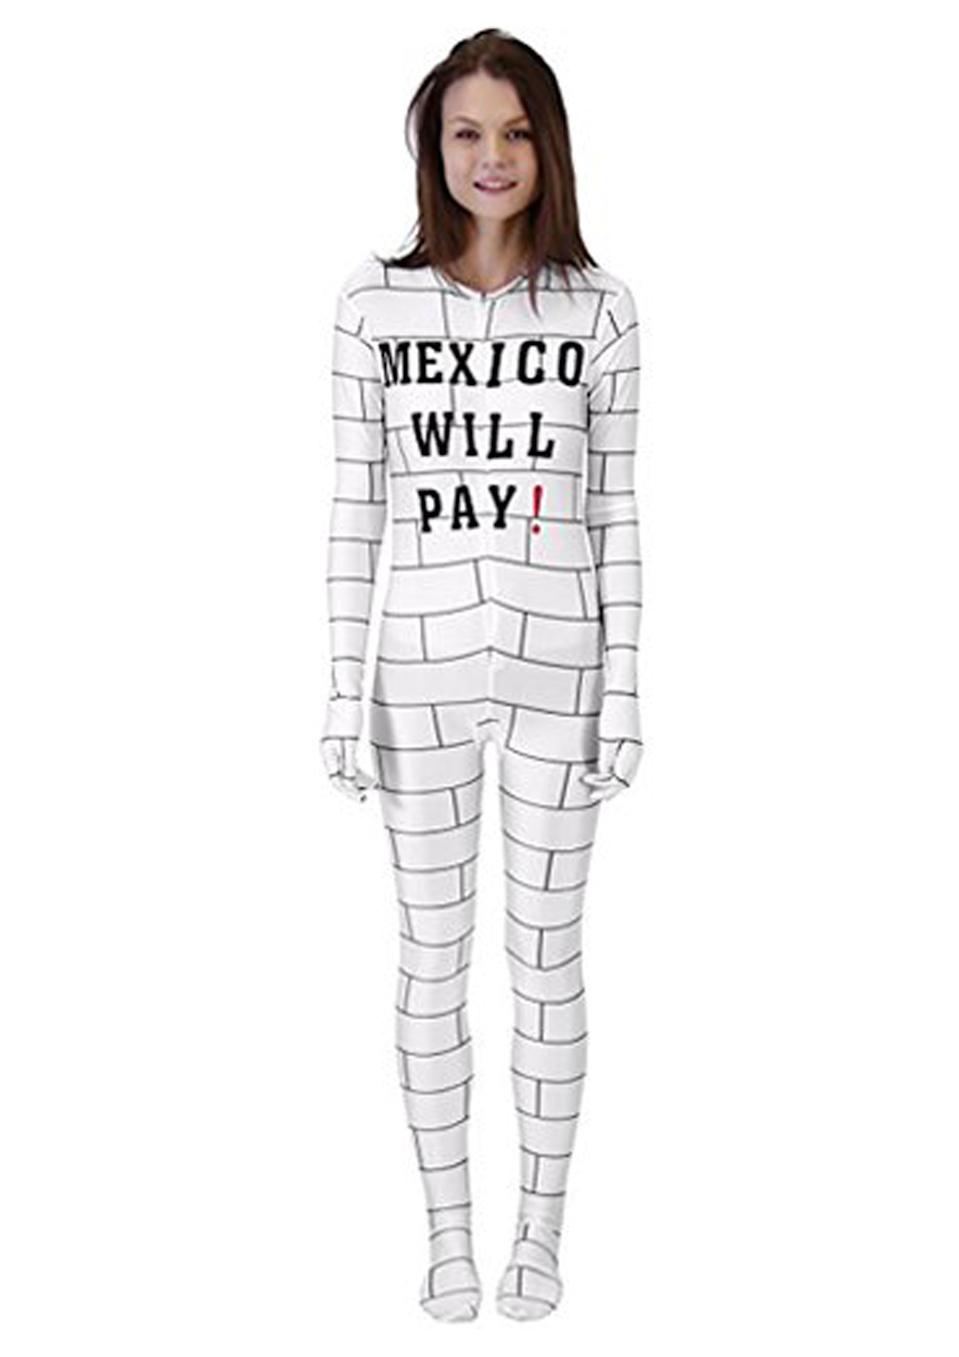 <p>If you thought the border patrol costumes were bad, wait till you get a look at this. Amazon were blasted for selling a distasteful 'Border Wall' costume, reading 'Mexico will pay!'<br><i>[Photo: Amazon]</i> </p>